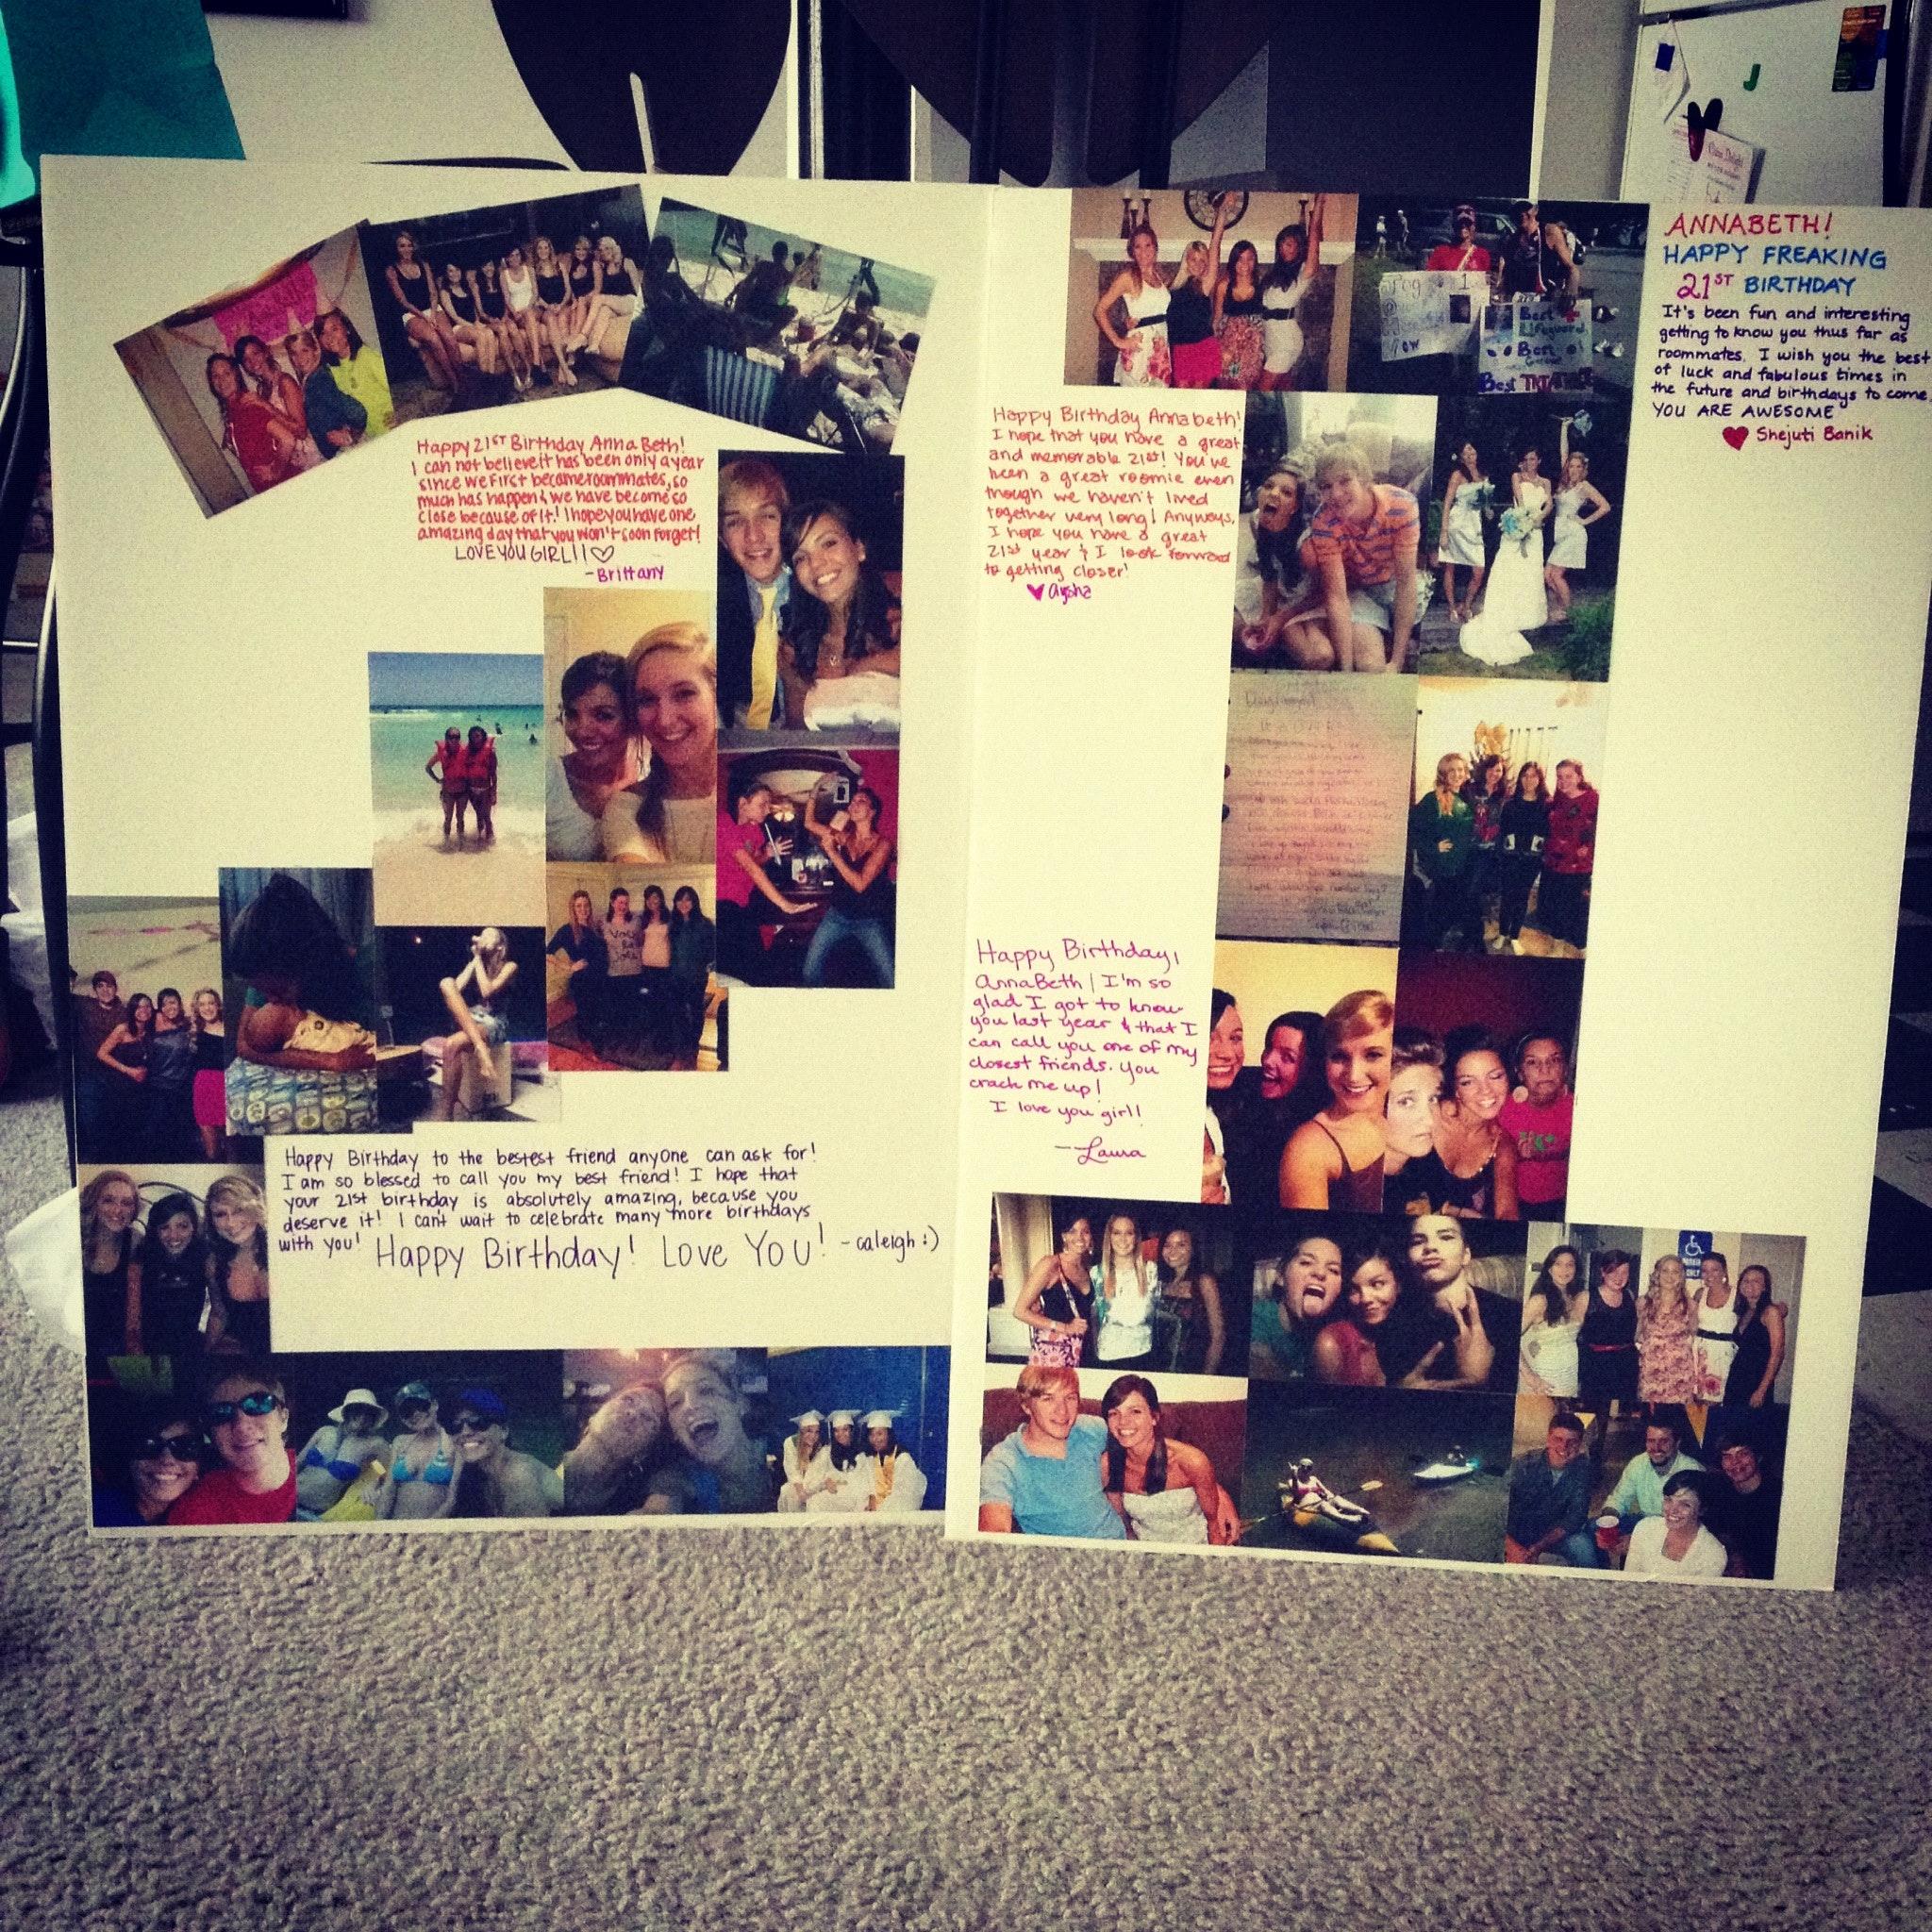 18th birthday poster ; amazing-how-to-make-a-poster-out-of-picture-and-good-ideas-of-cute-18th-birthday-poster-for-your-best-friend-posters-16